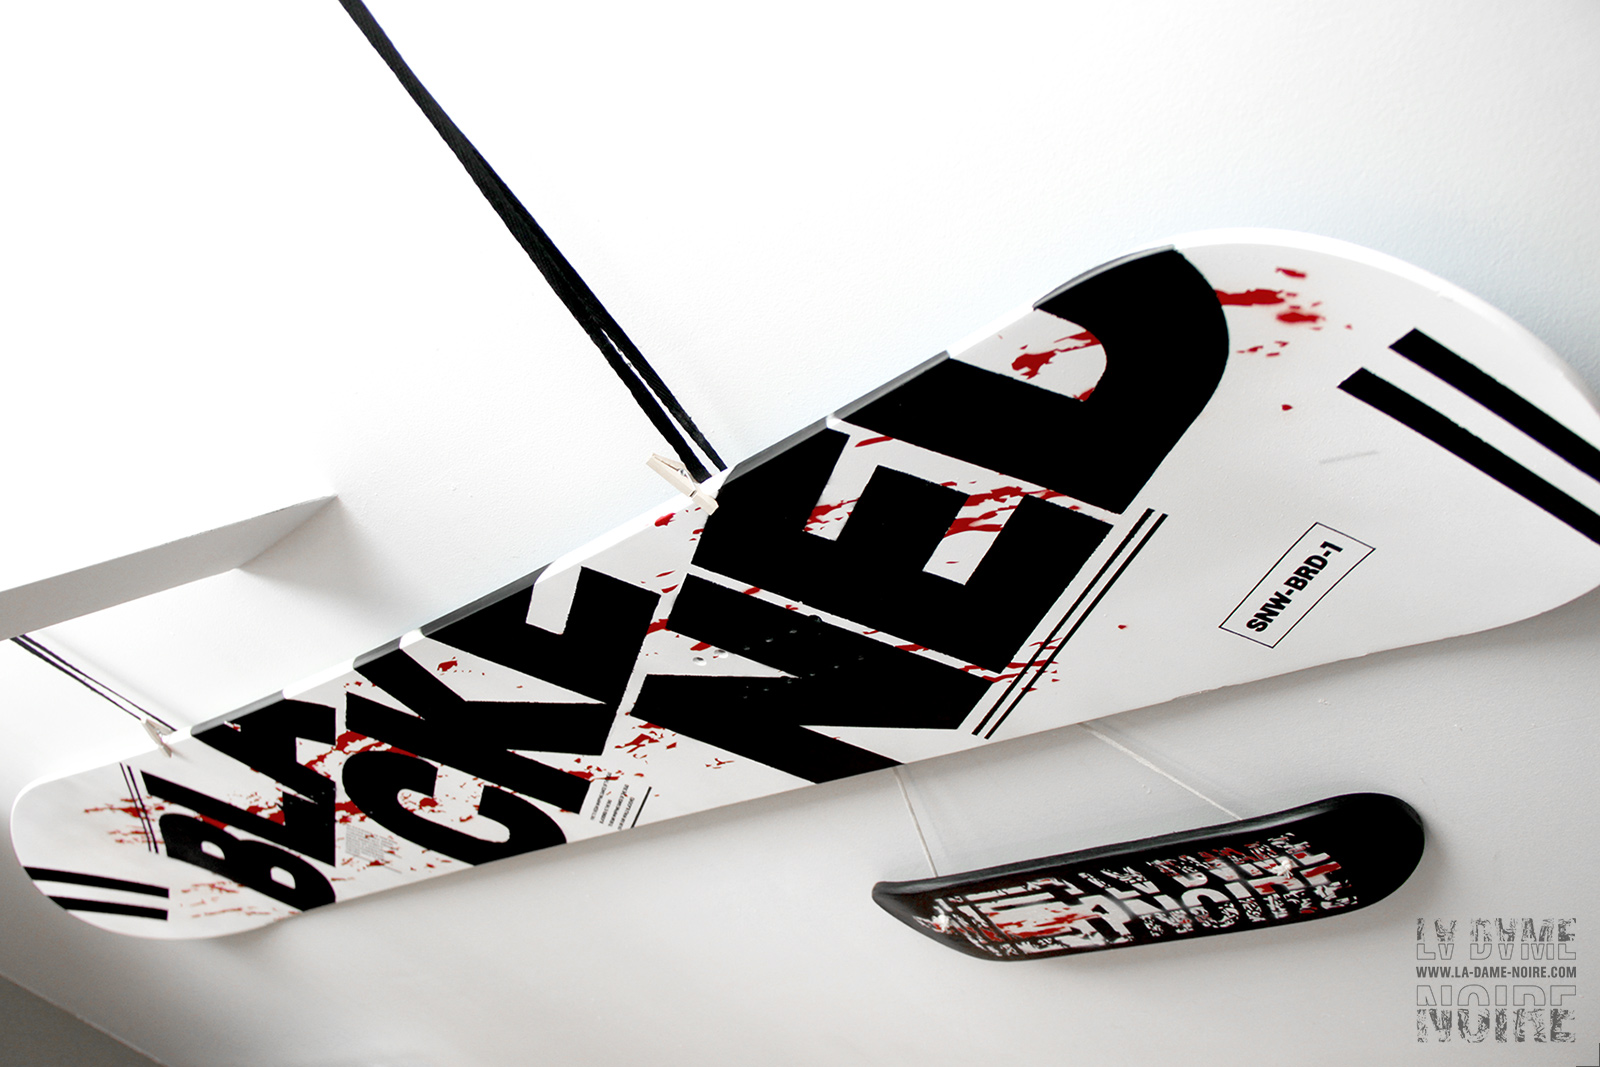 Details of the snowboard painted in black, white, red, and the word Blackened in big bold letters